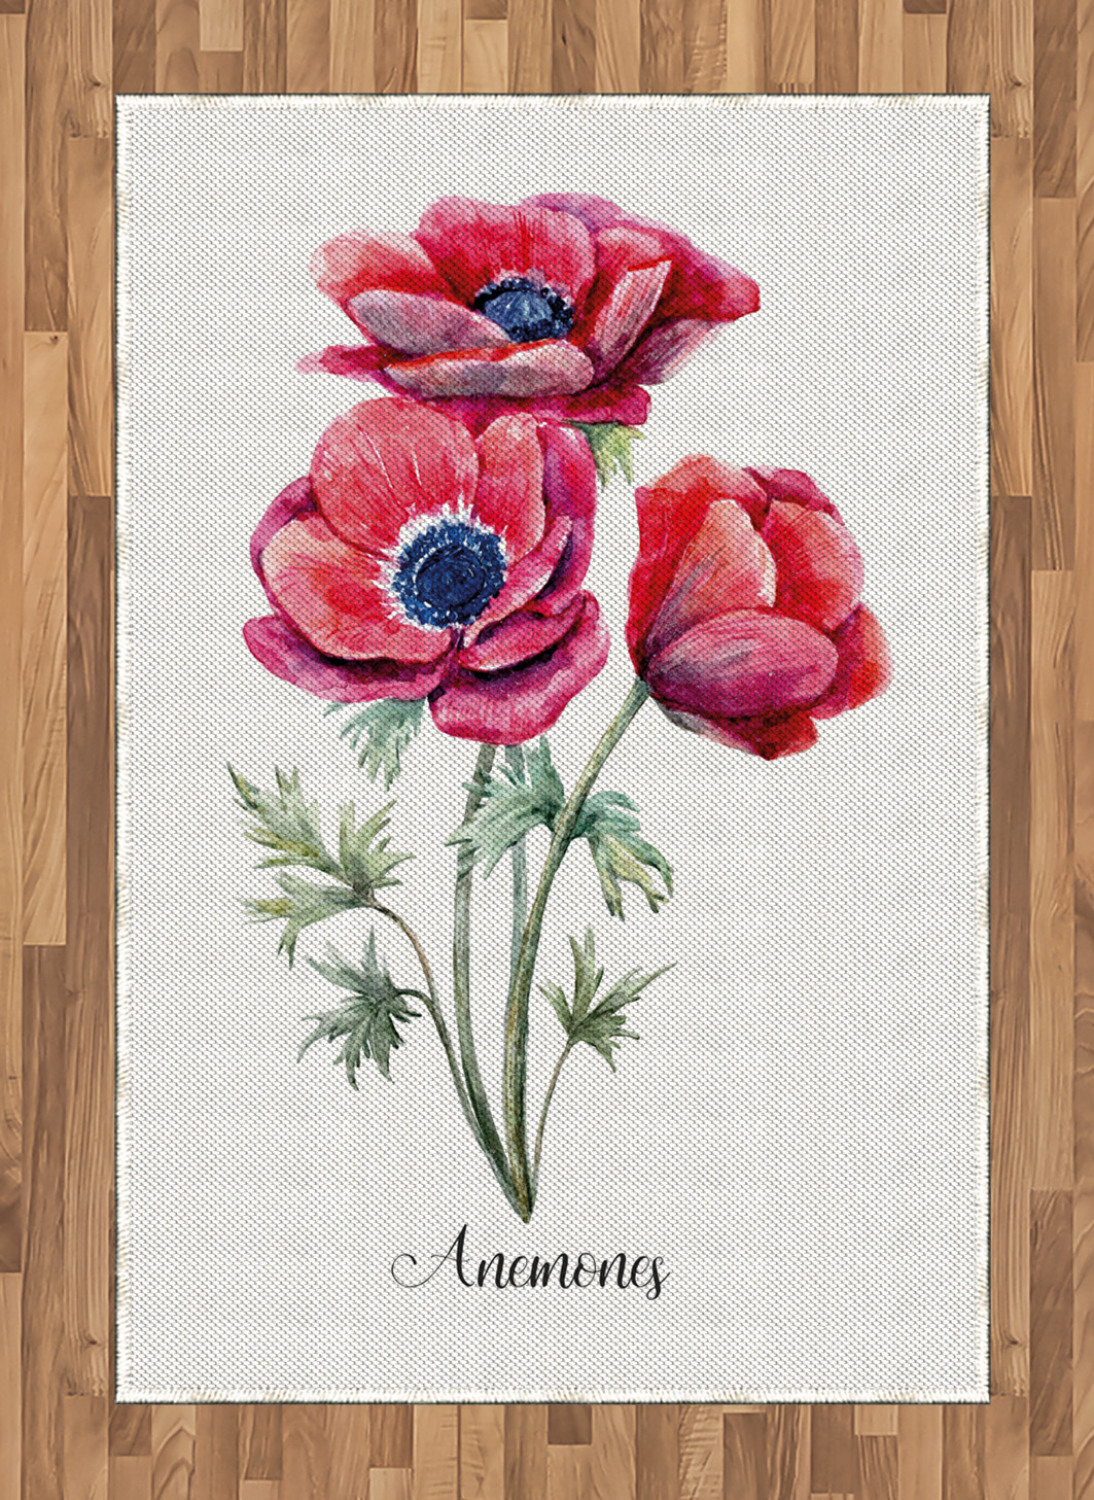 Anemone-Flower-Area-Rug-Decor-Flat-Woven-Accent-Rug-Home-Decor-2-Sizes-Ambesonne thumbnail 53